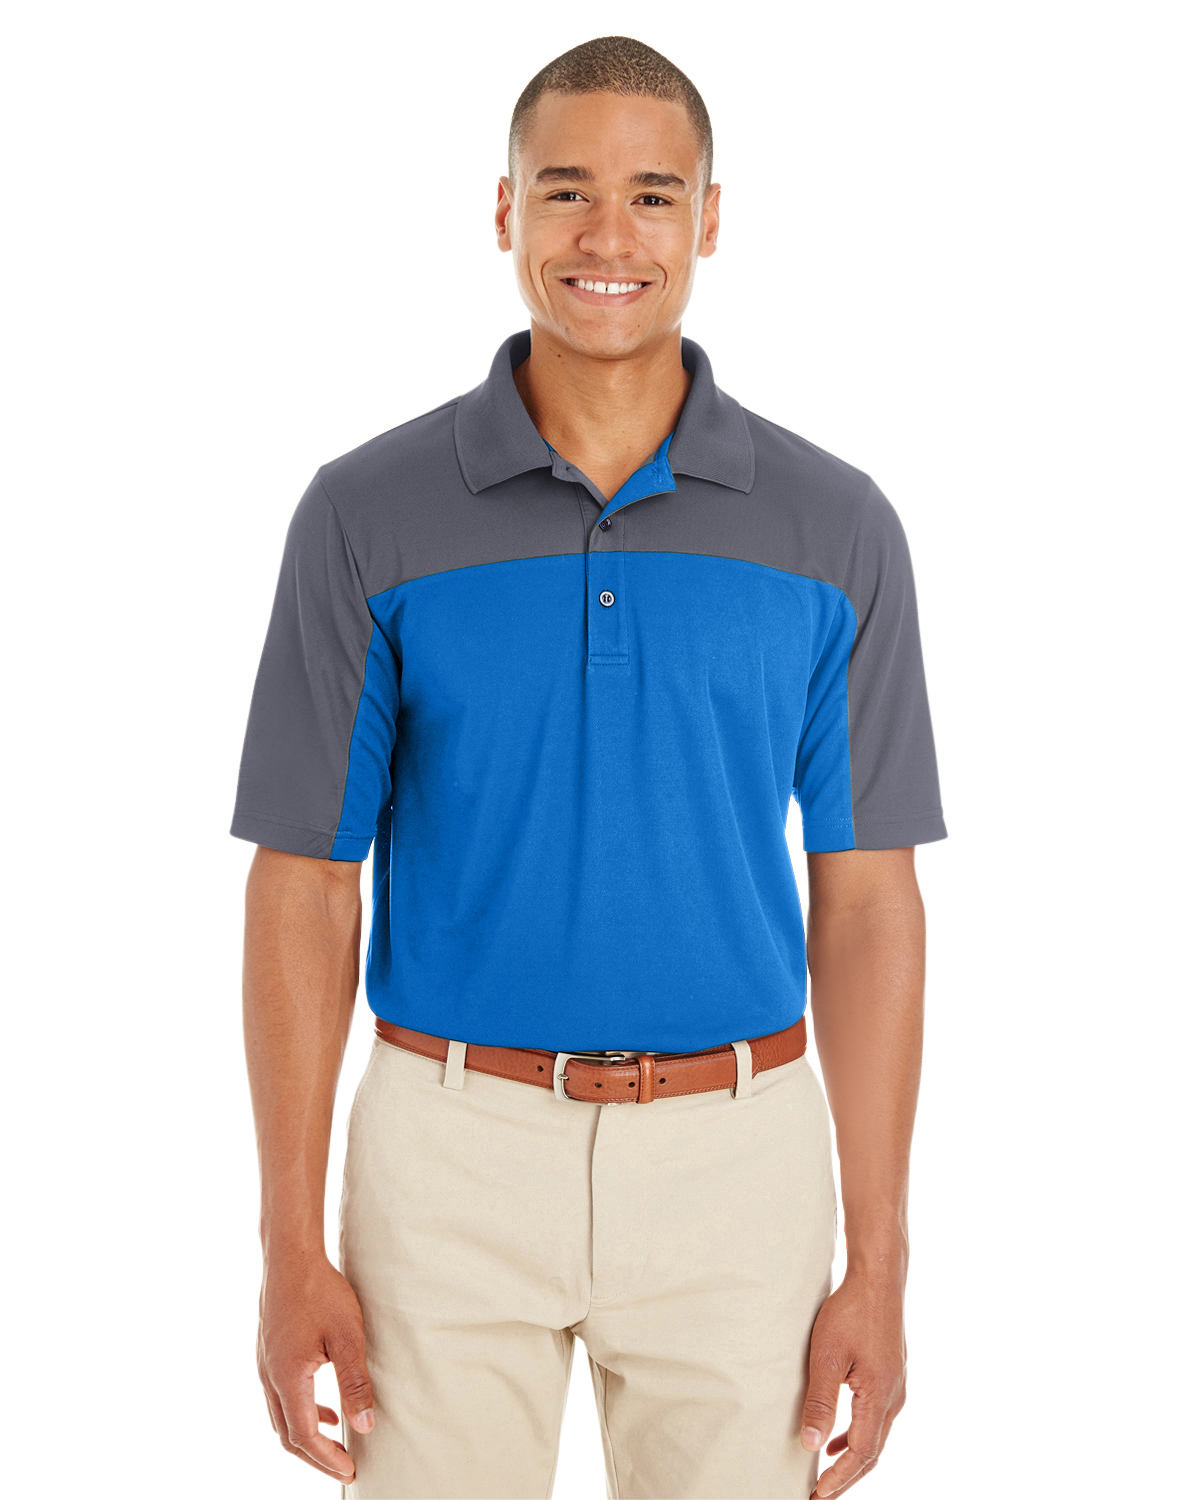 Ash City CE101 - Men's Balance Colorblock Performance Pique Polo